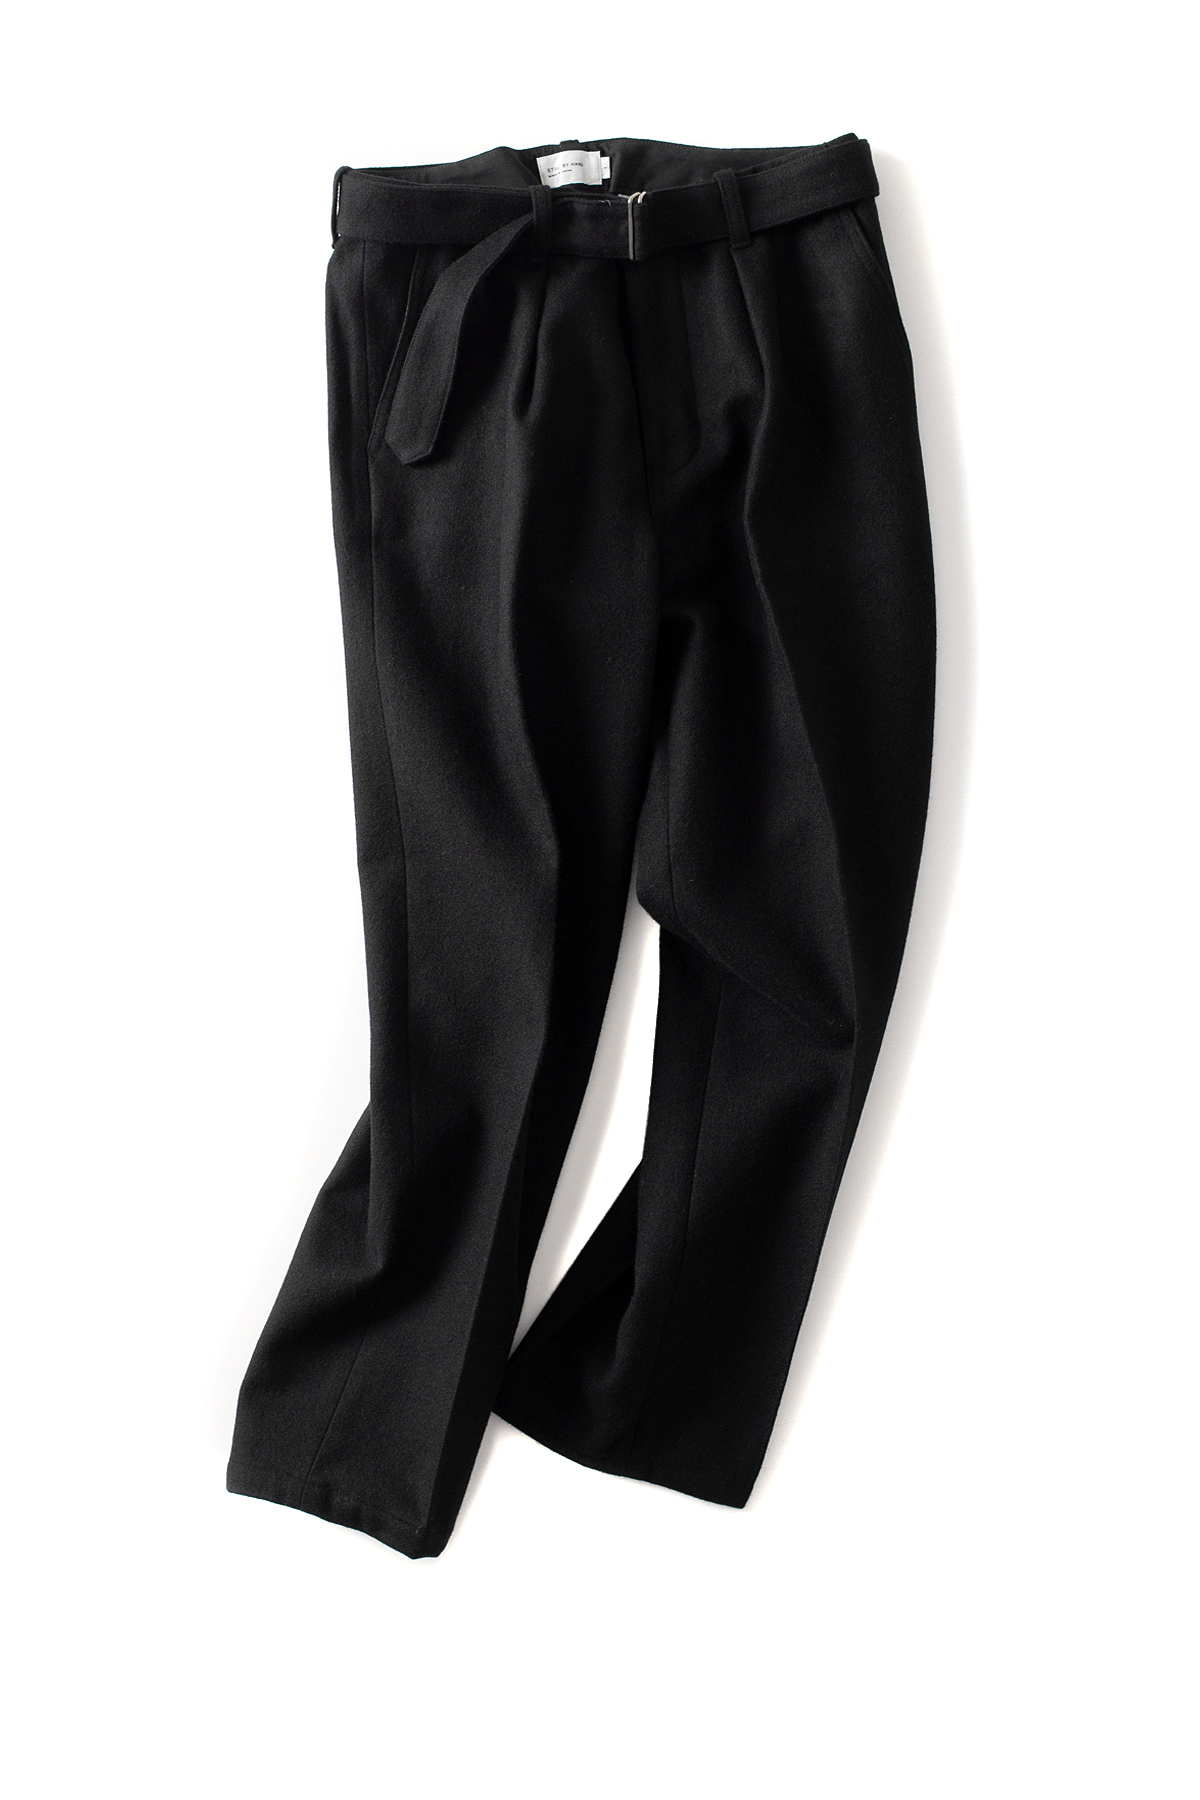 Still by Hand : Belted Melton Pants (Black)